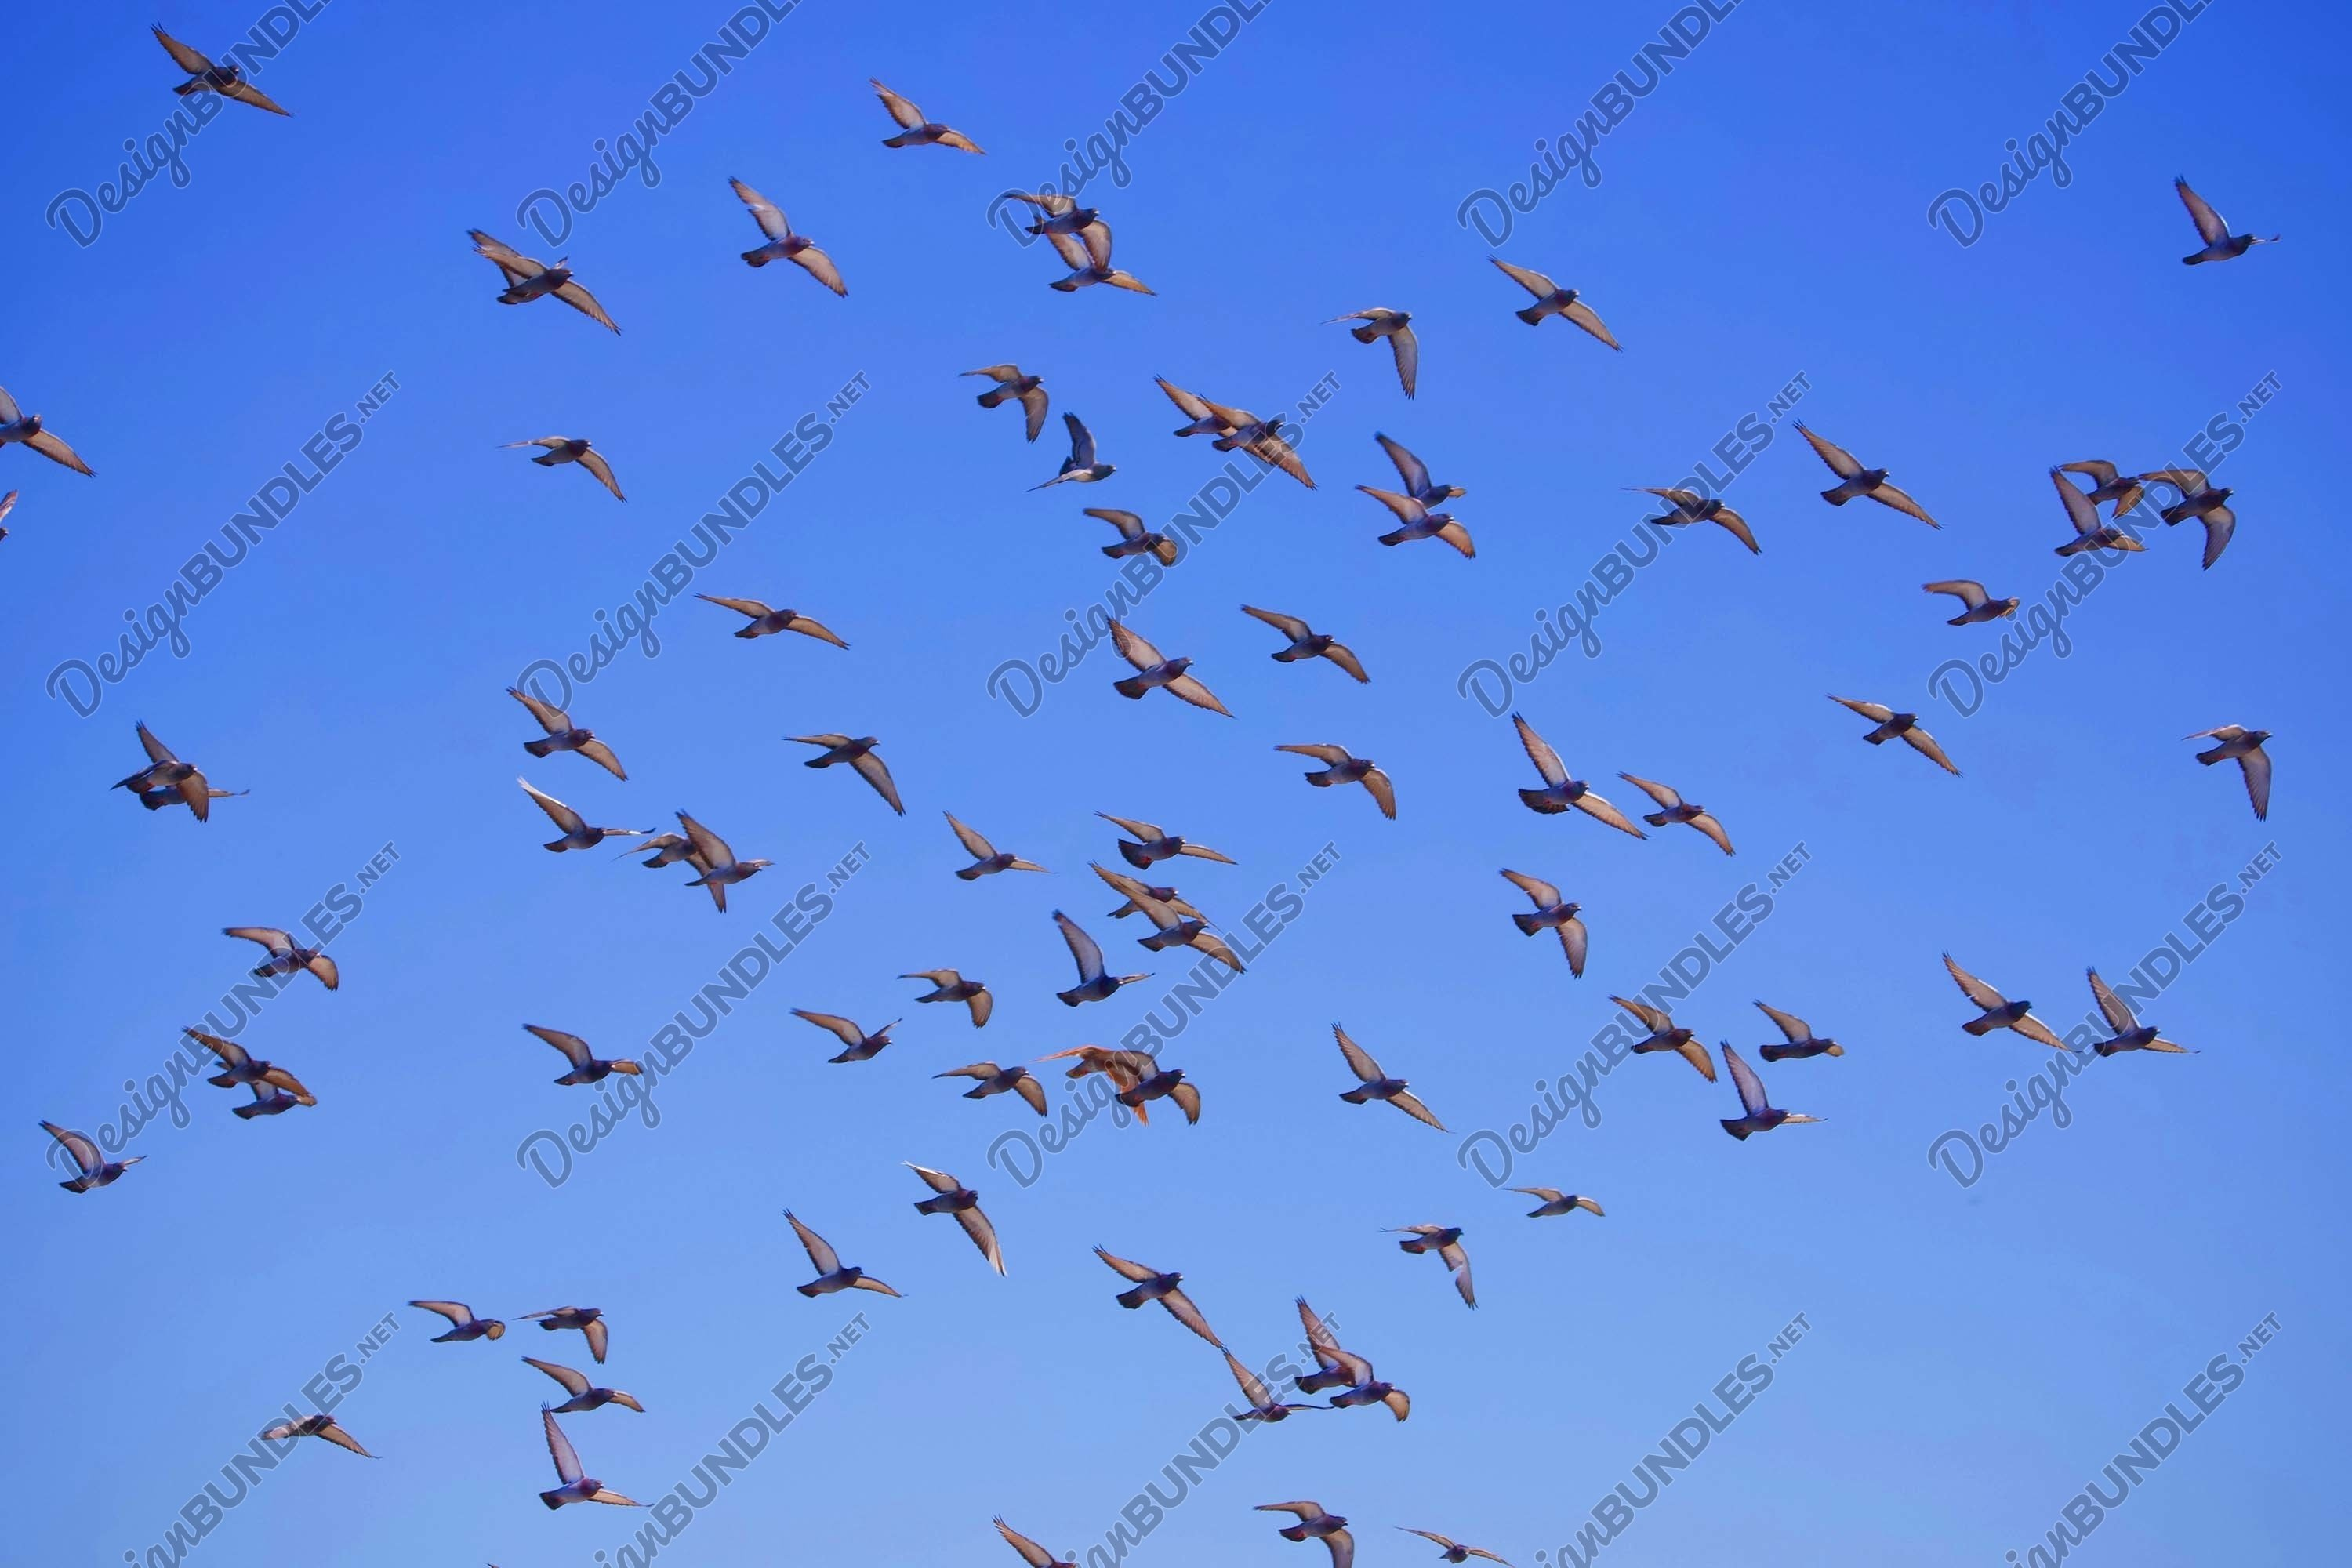 Stock Photo - Low Angle View Of Birds Flying In Blue Sky example image 1